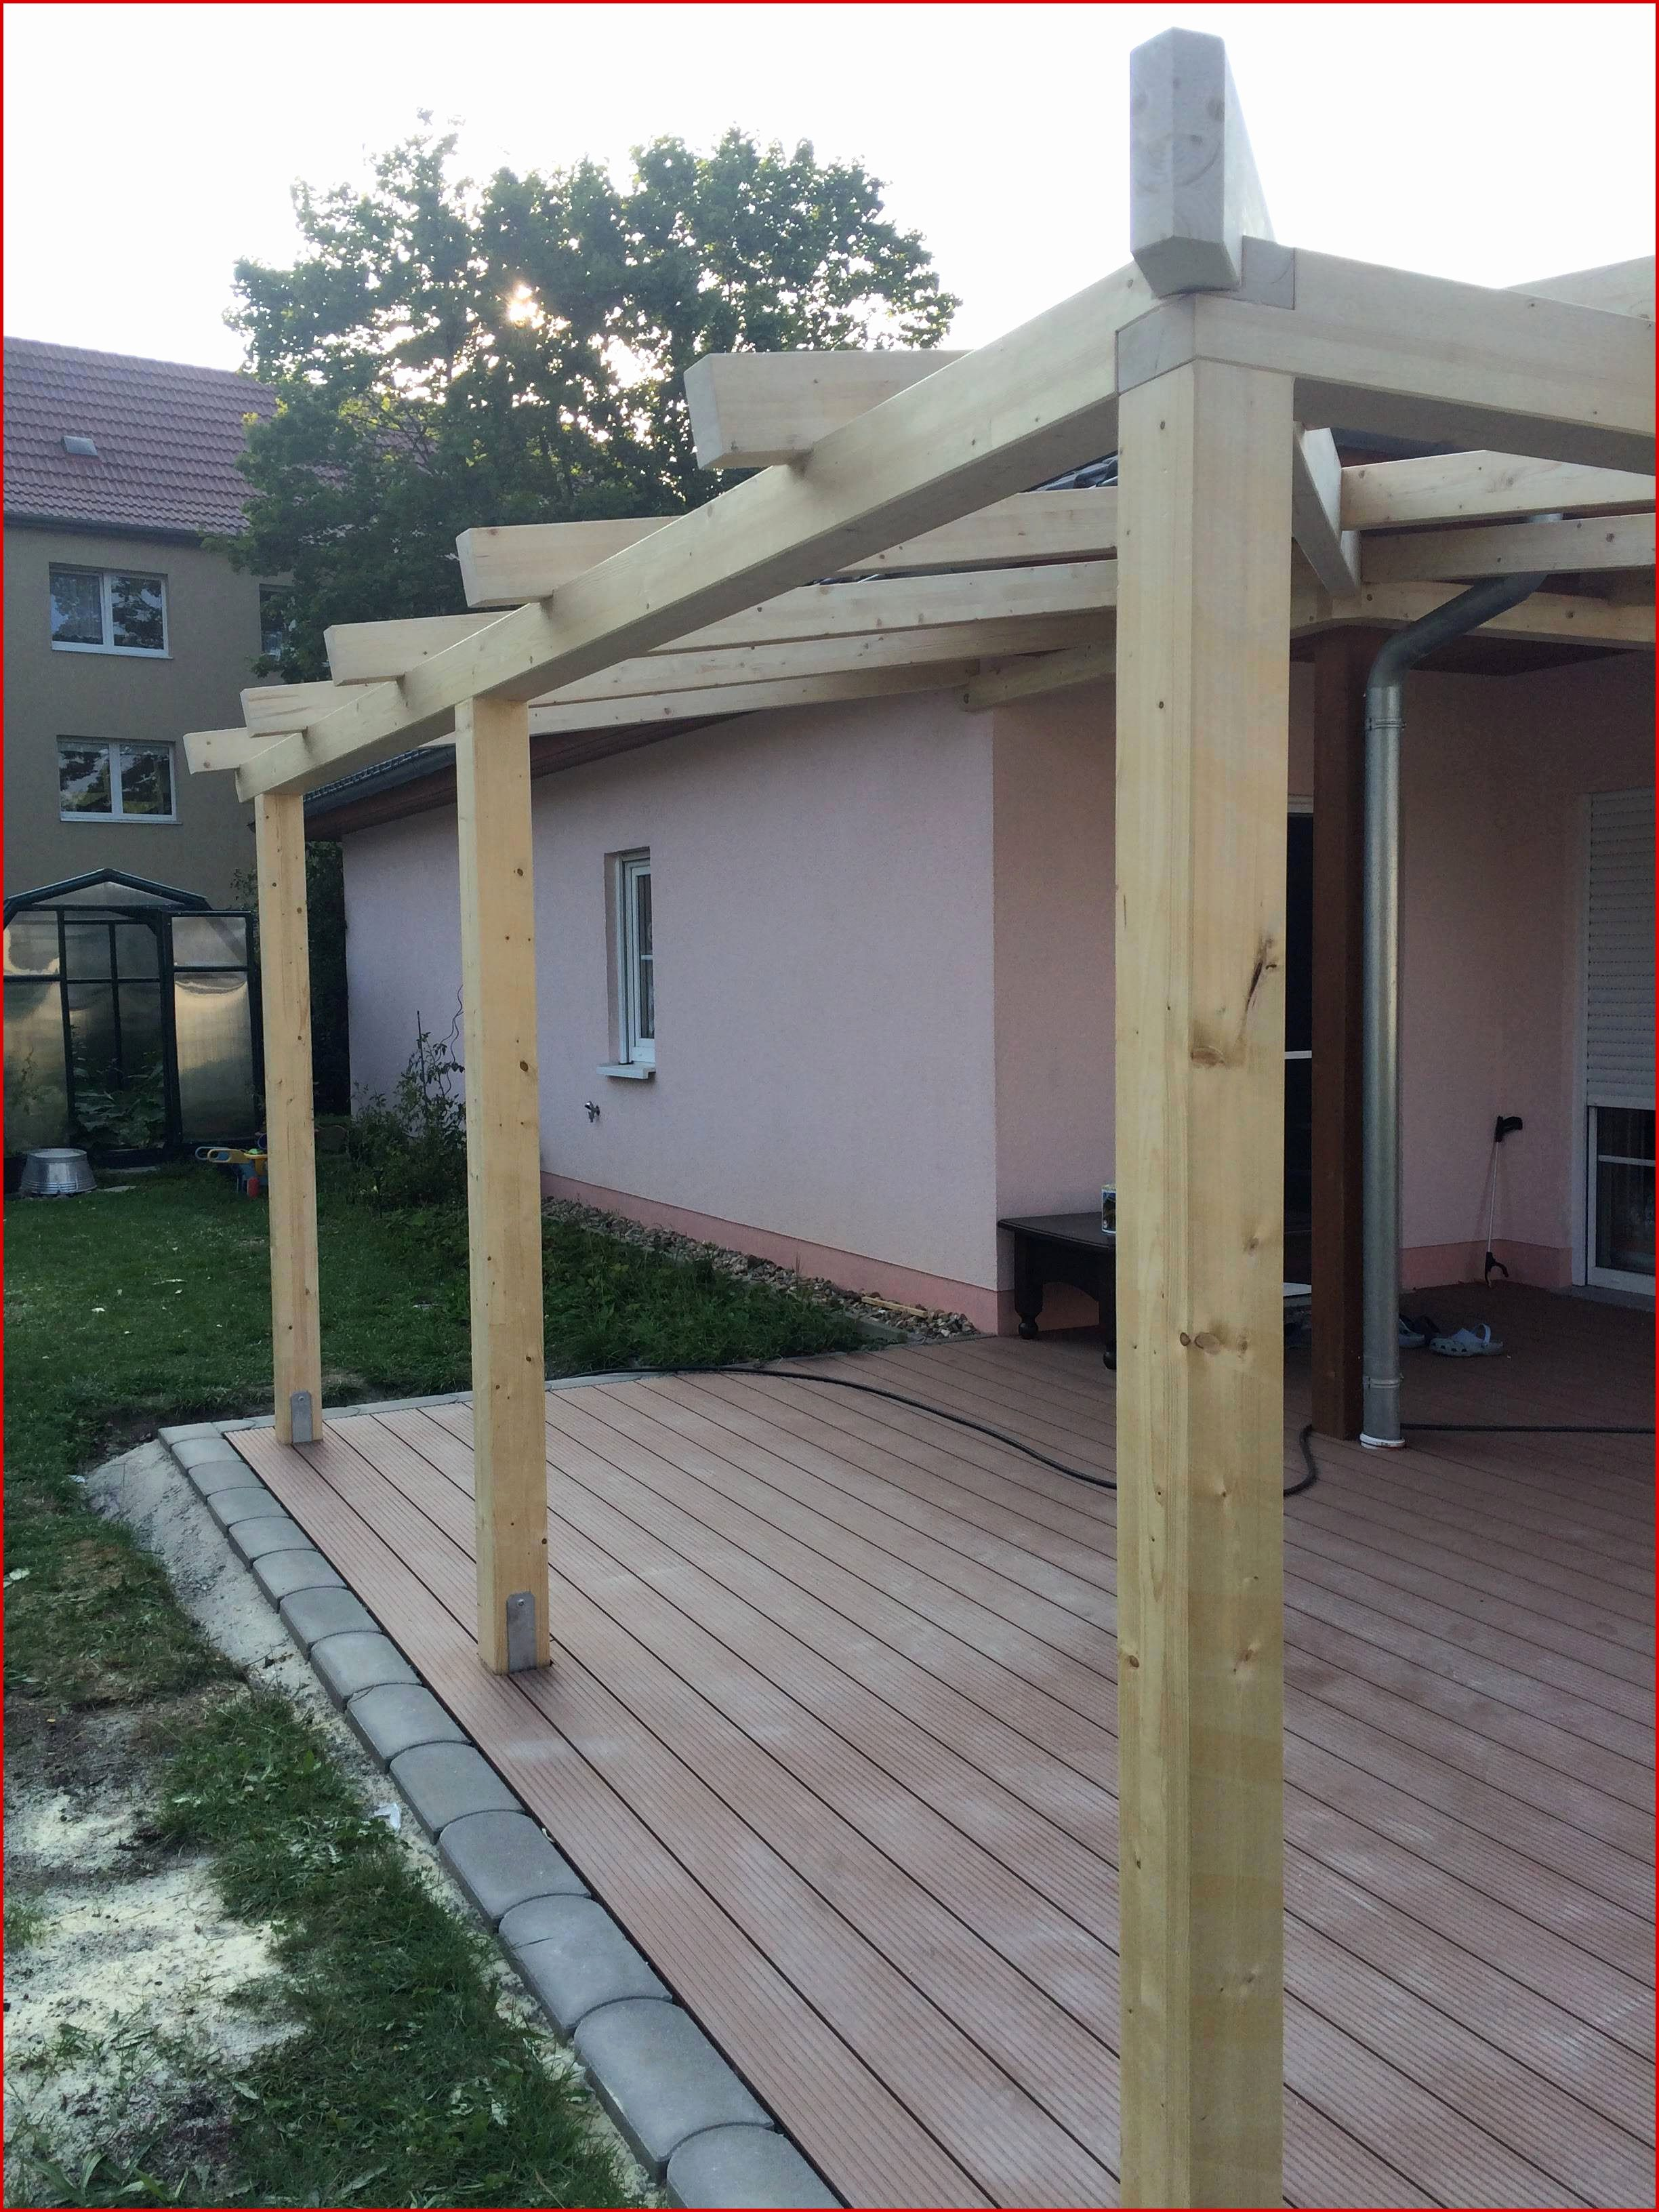 Terrasse Baugenehmigung Bayern 25 Awesome Wood Carports All About Home Inspirations Pergola